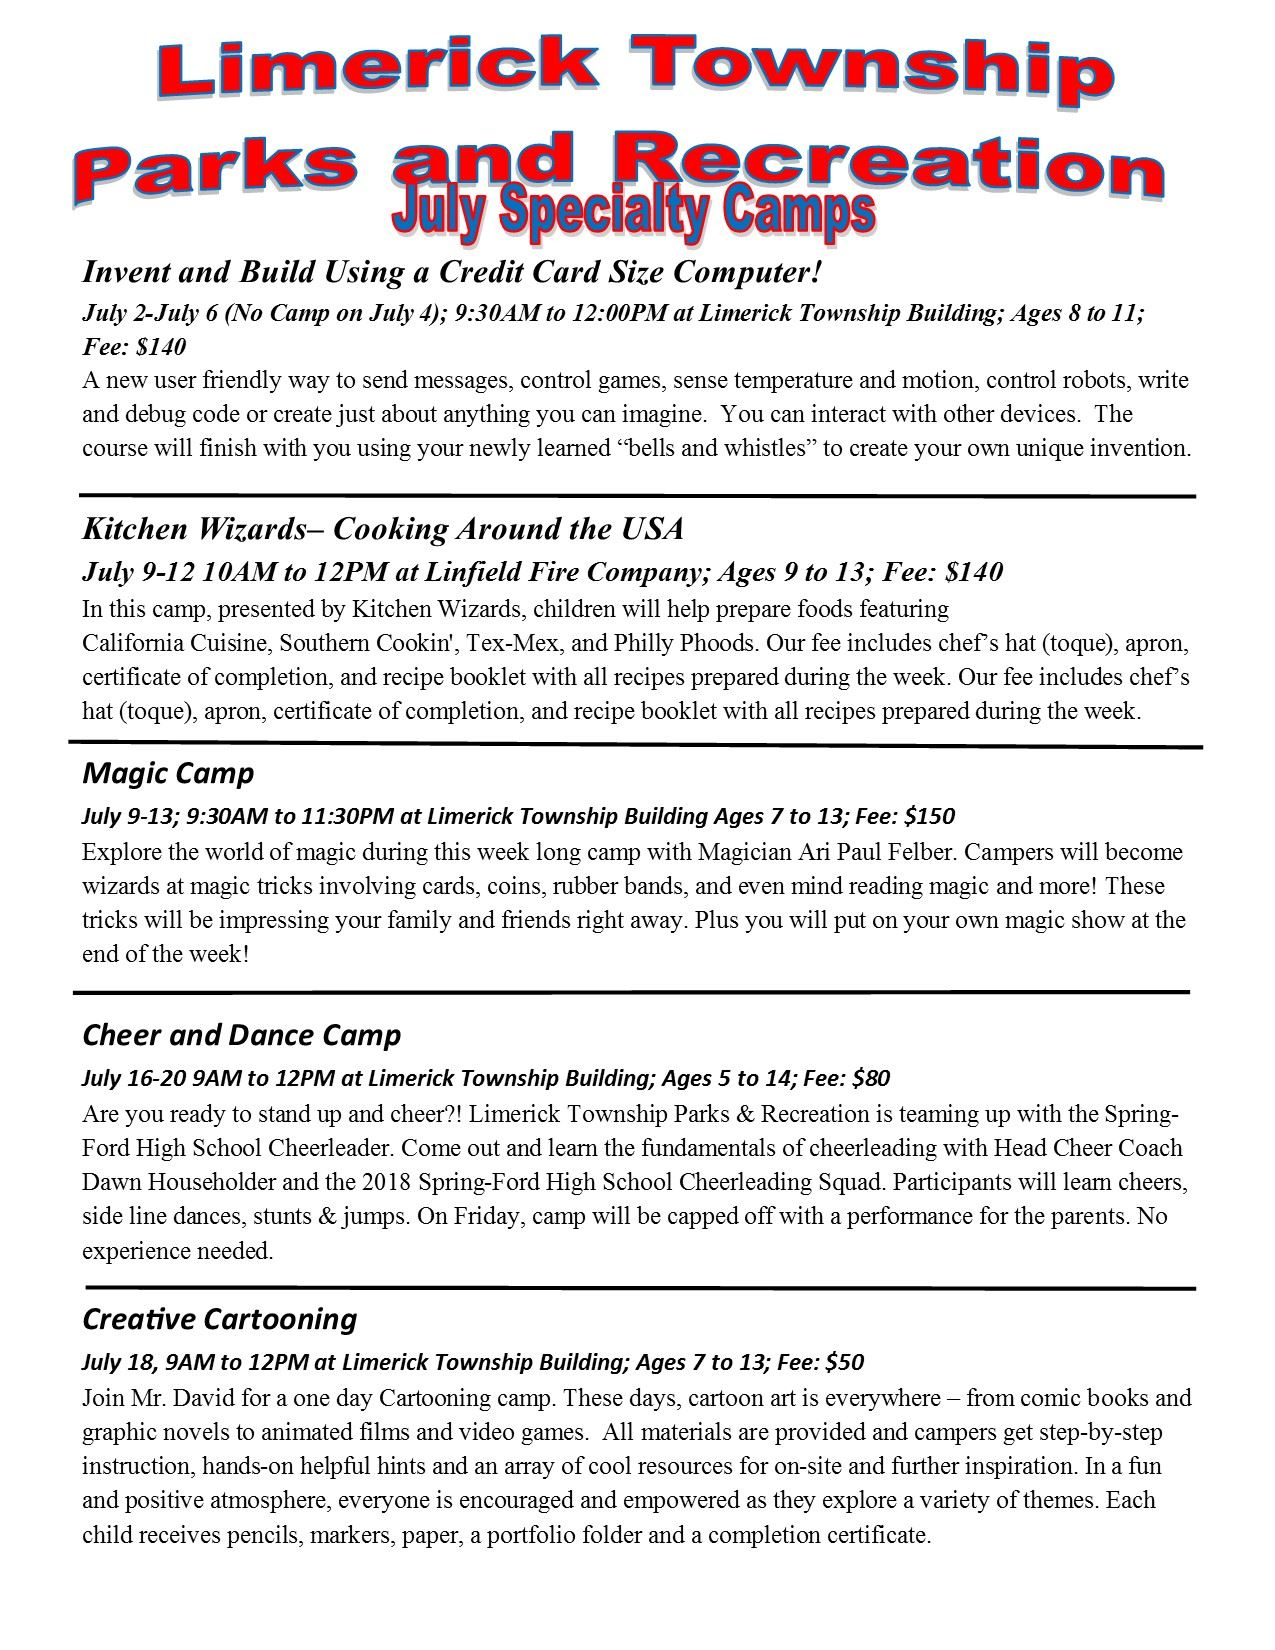 2018 July Specialty Camps